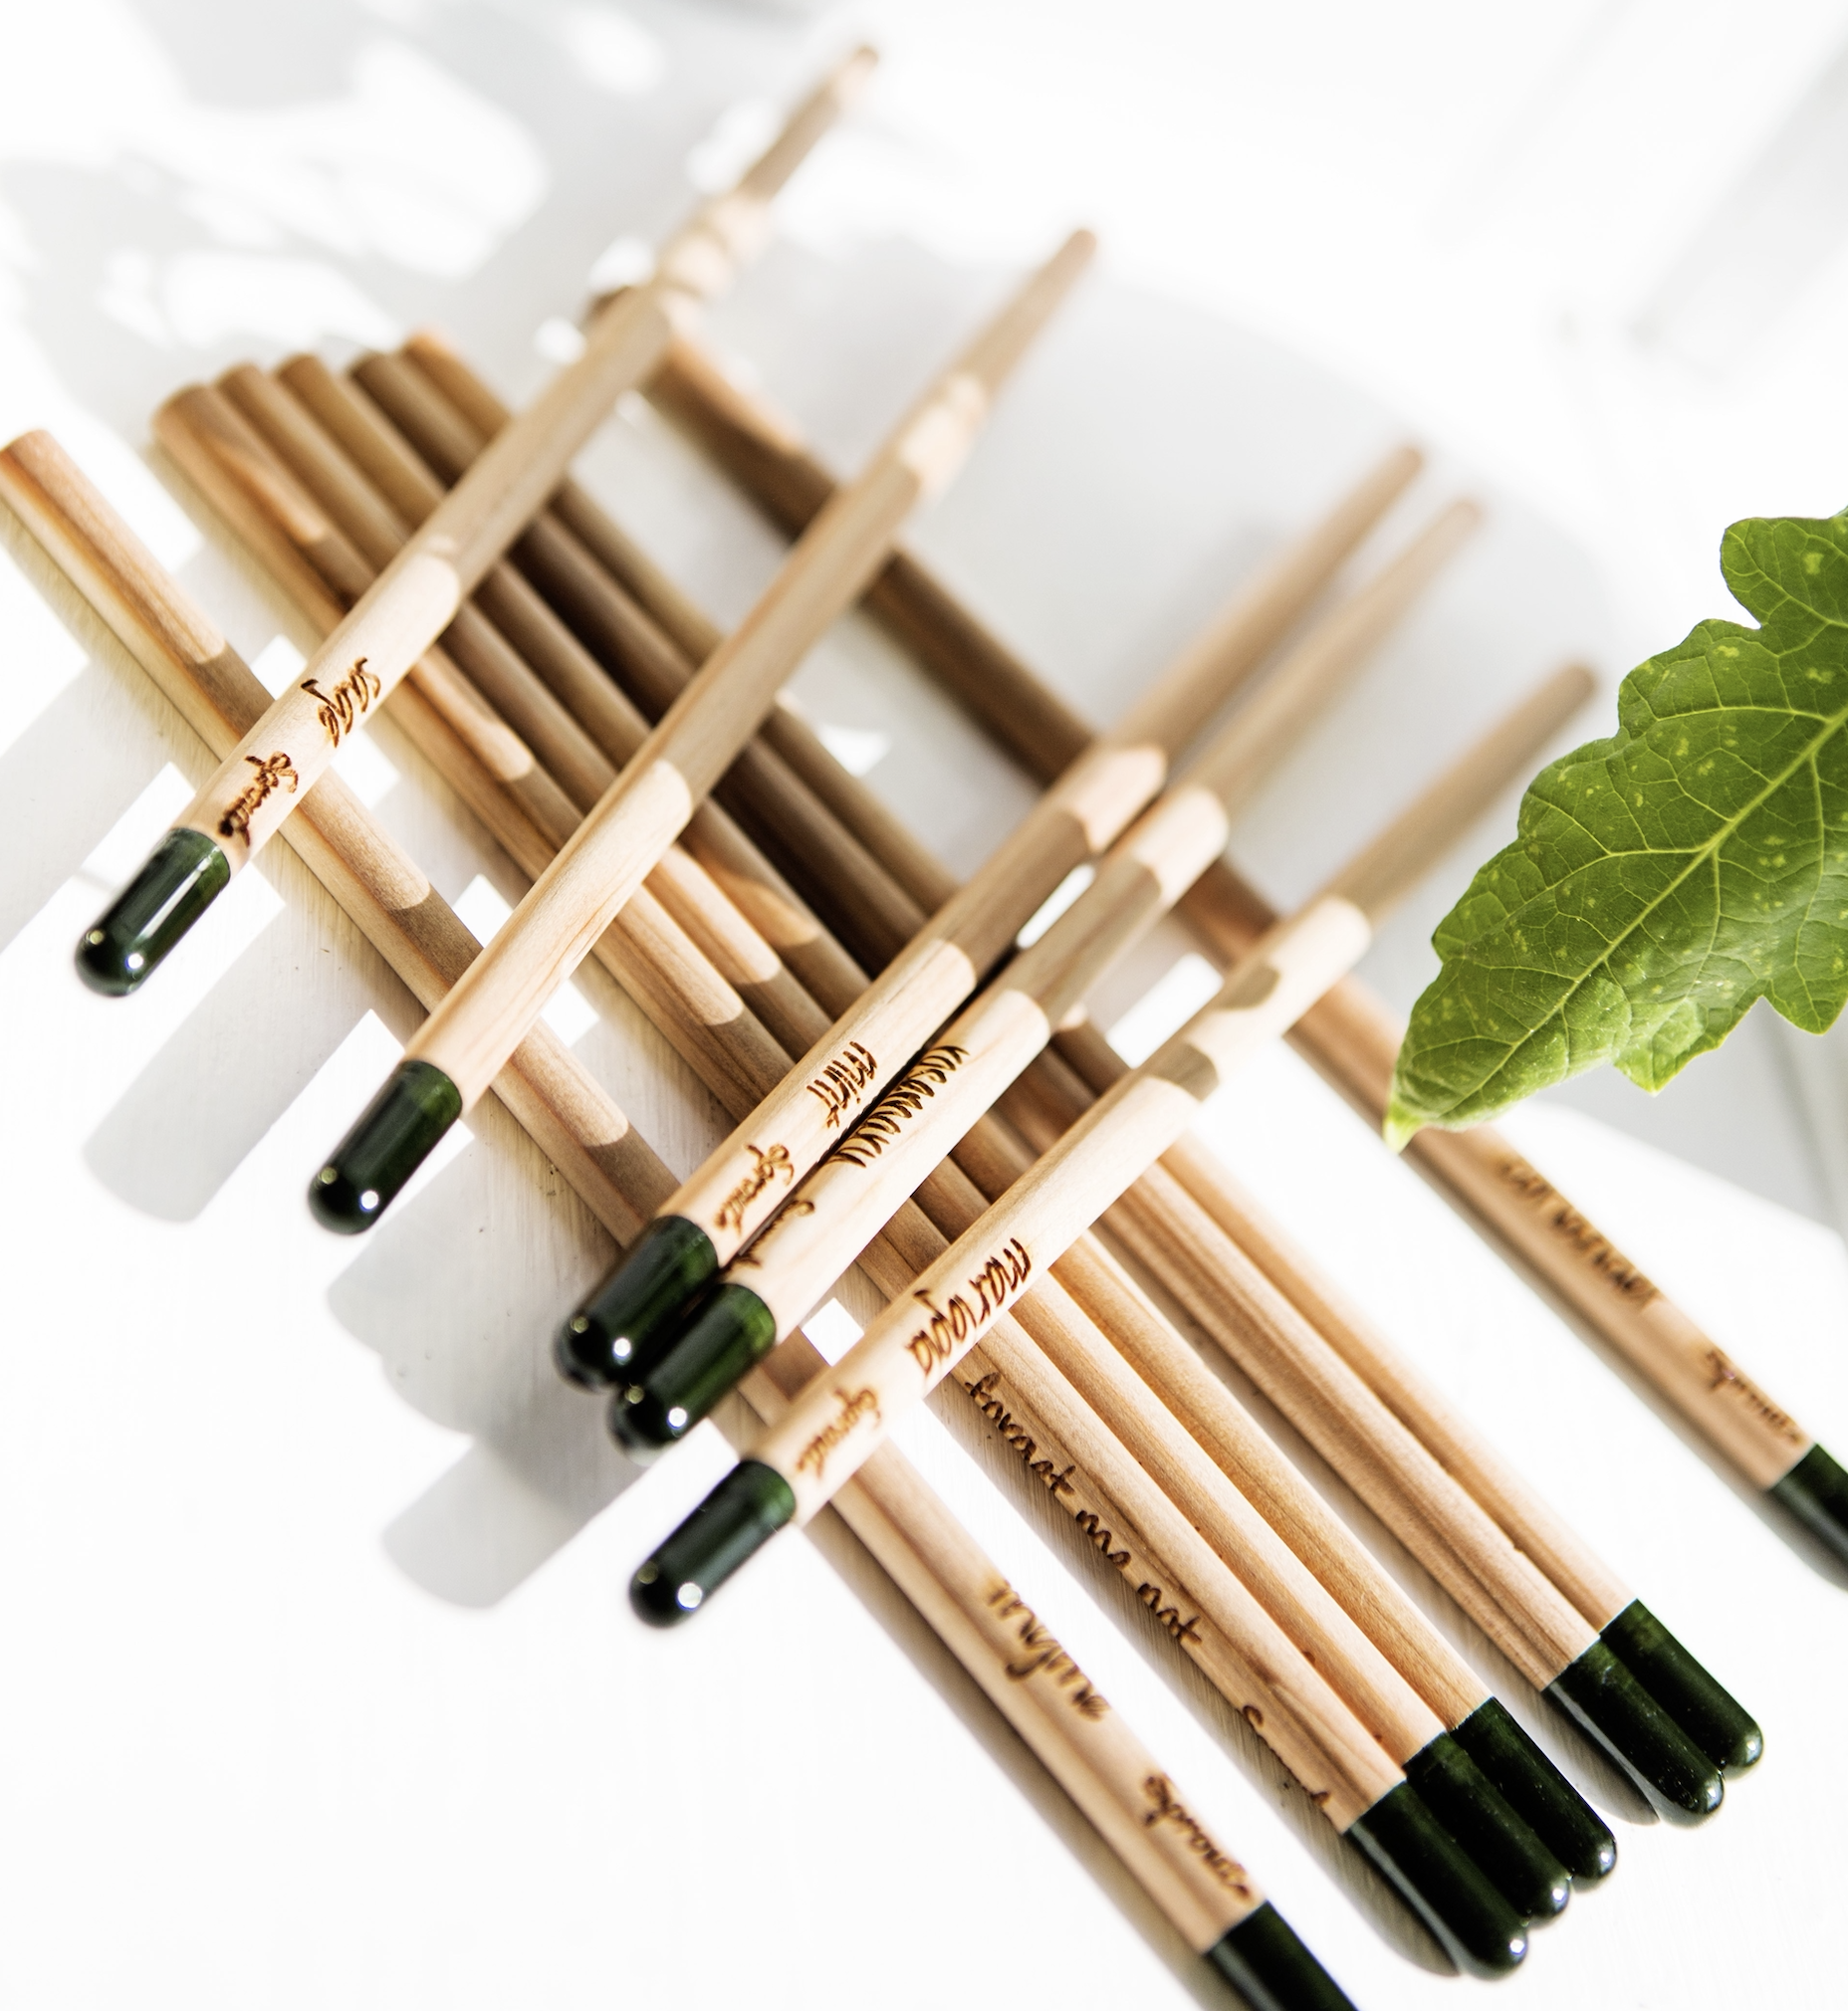 Sprout pencils come in various colours and packaging is customisable